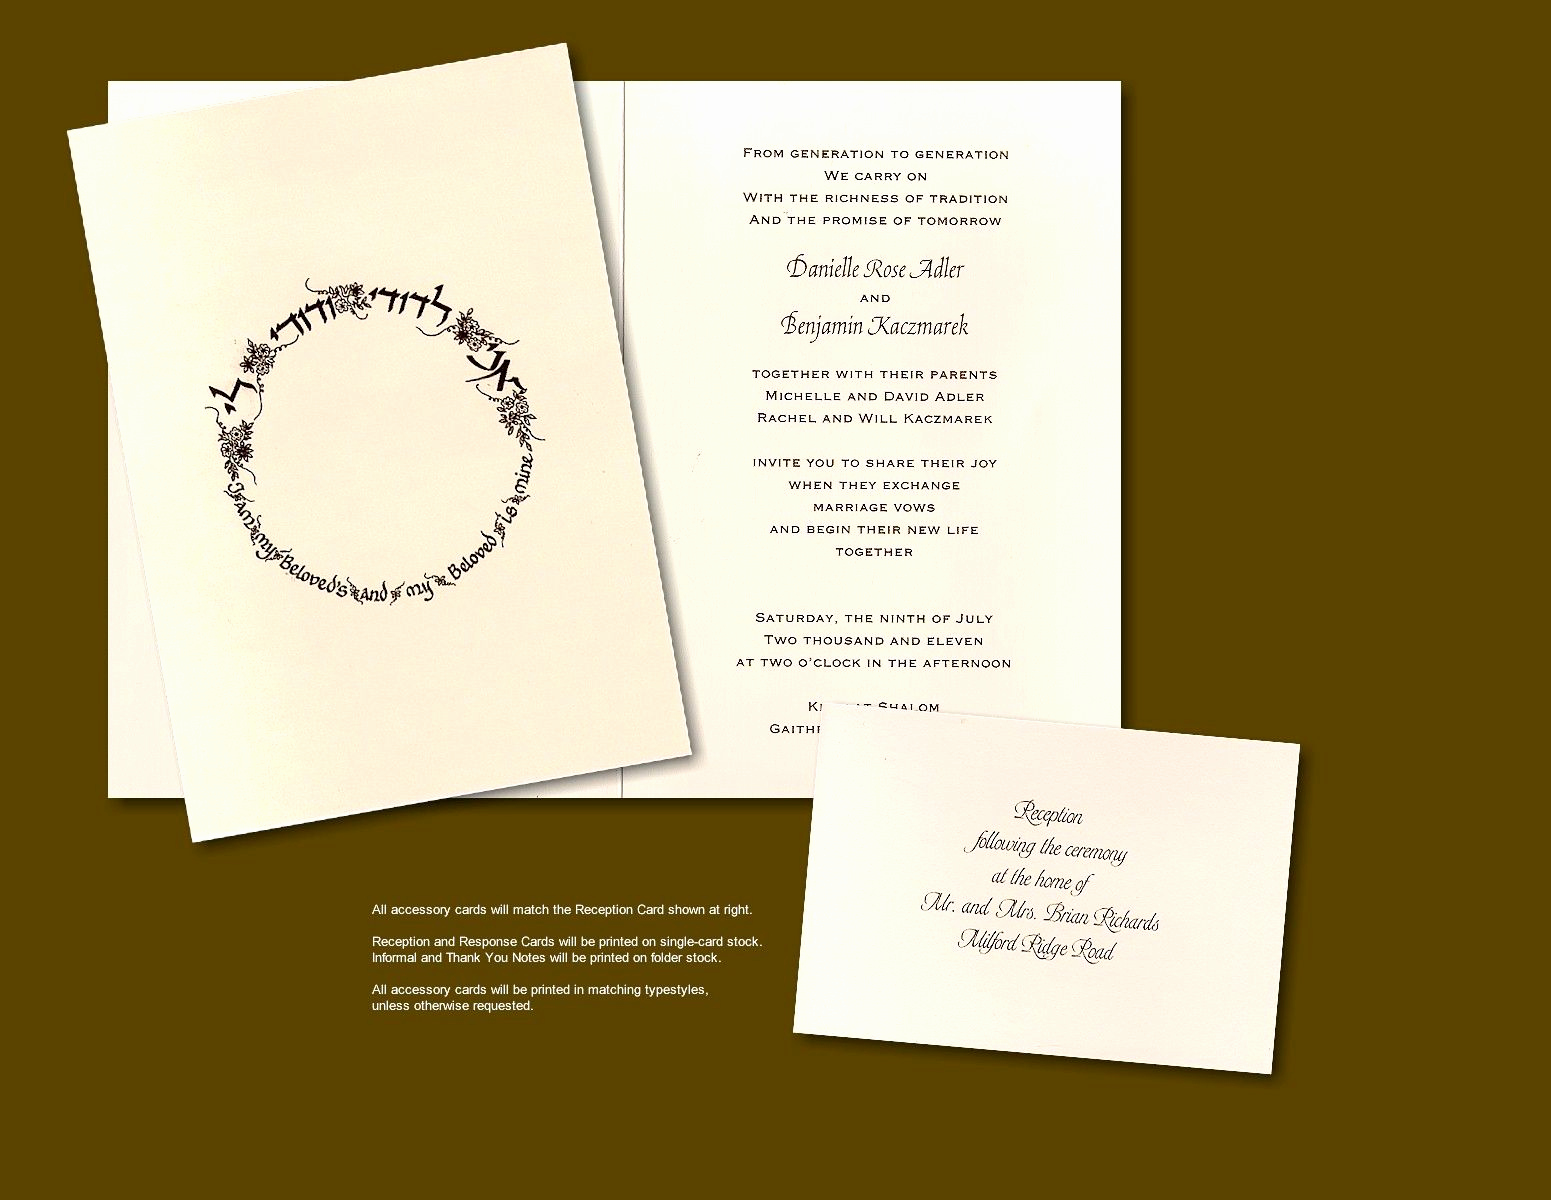 Jewish Wedding Invitation Wording Elegant song Of solomon Jewish Wedding Invitation Keywords